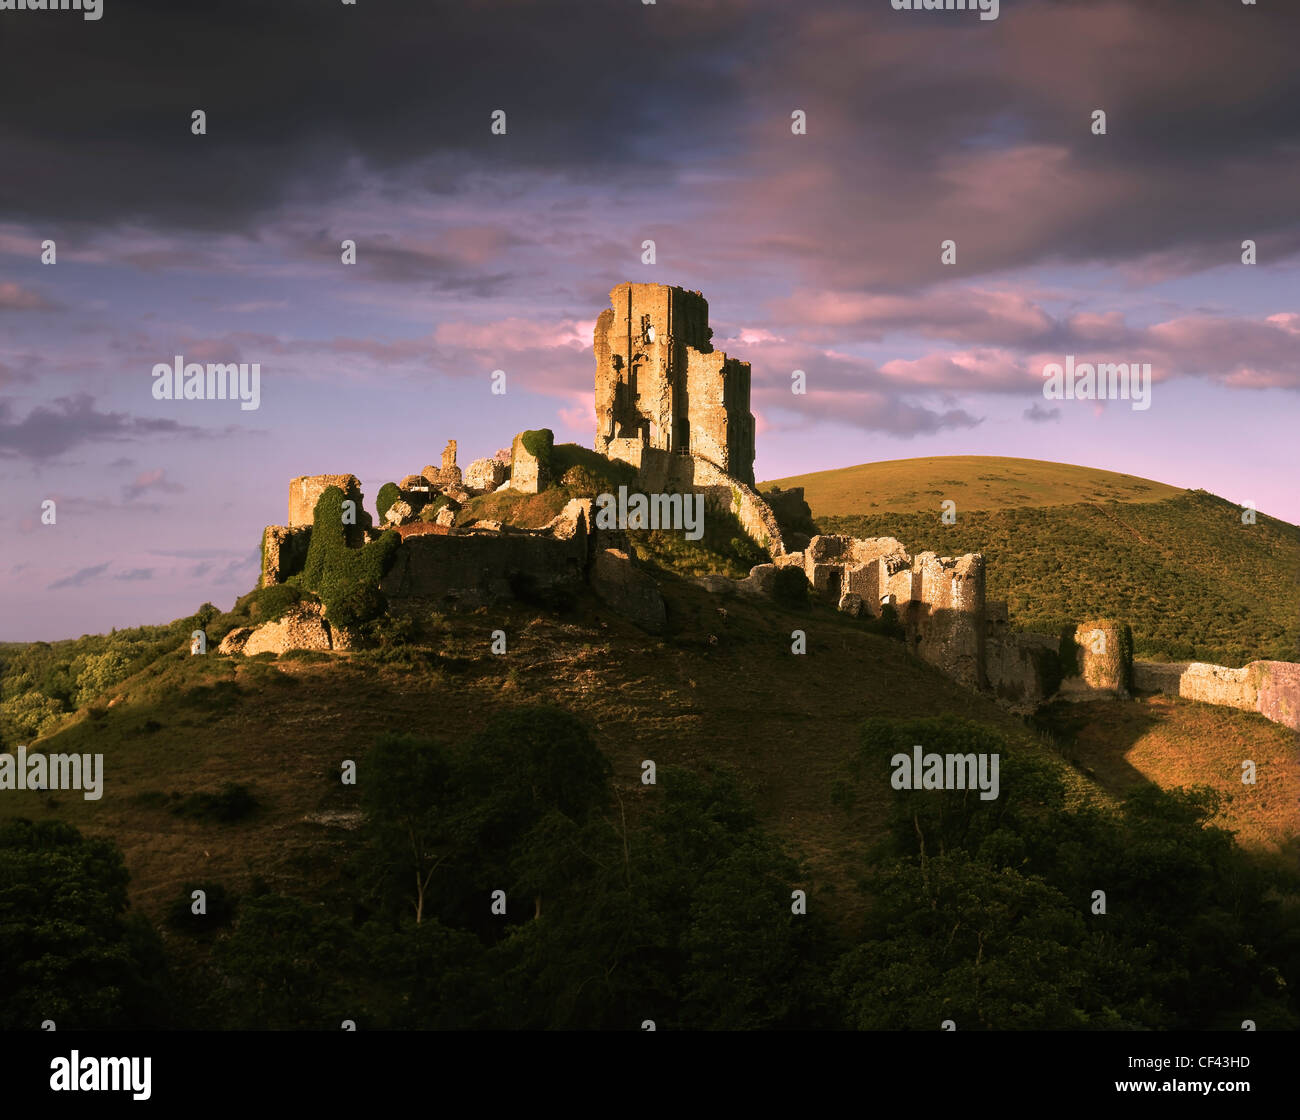 Late evening light on the ruins of the 11th century Corfe Castle in the Purbeck Hills. - Stock Image